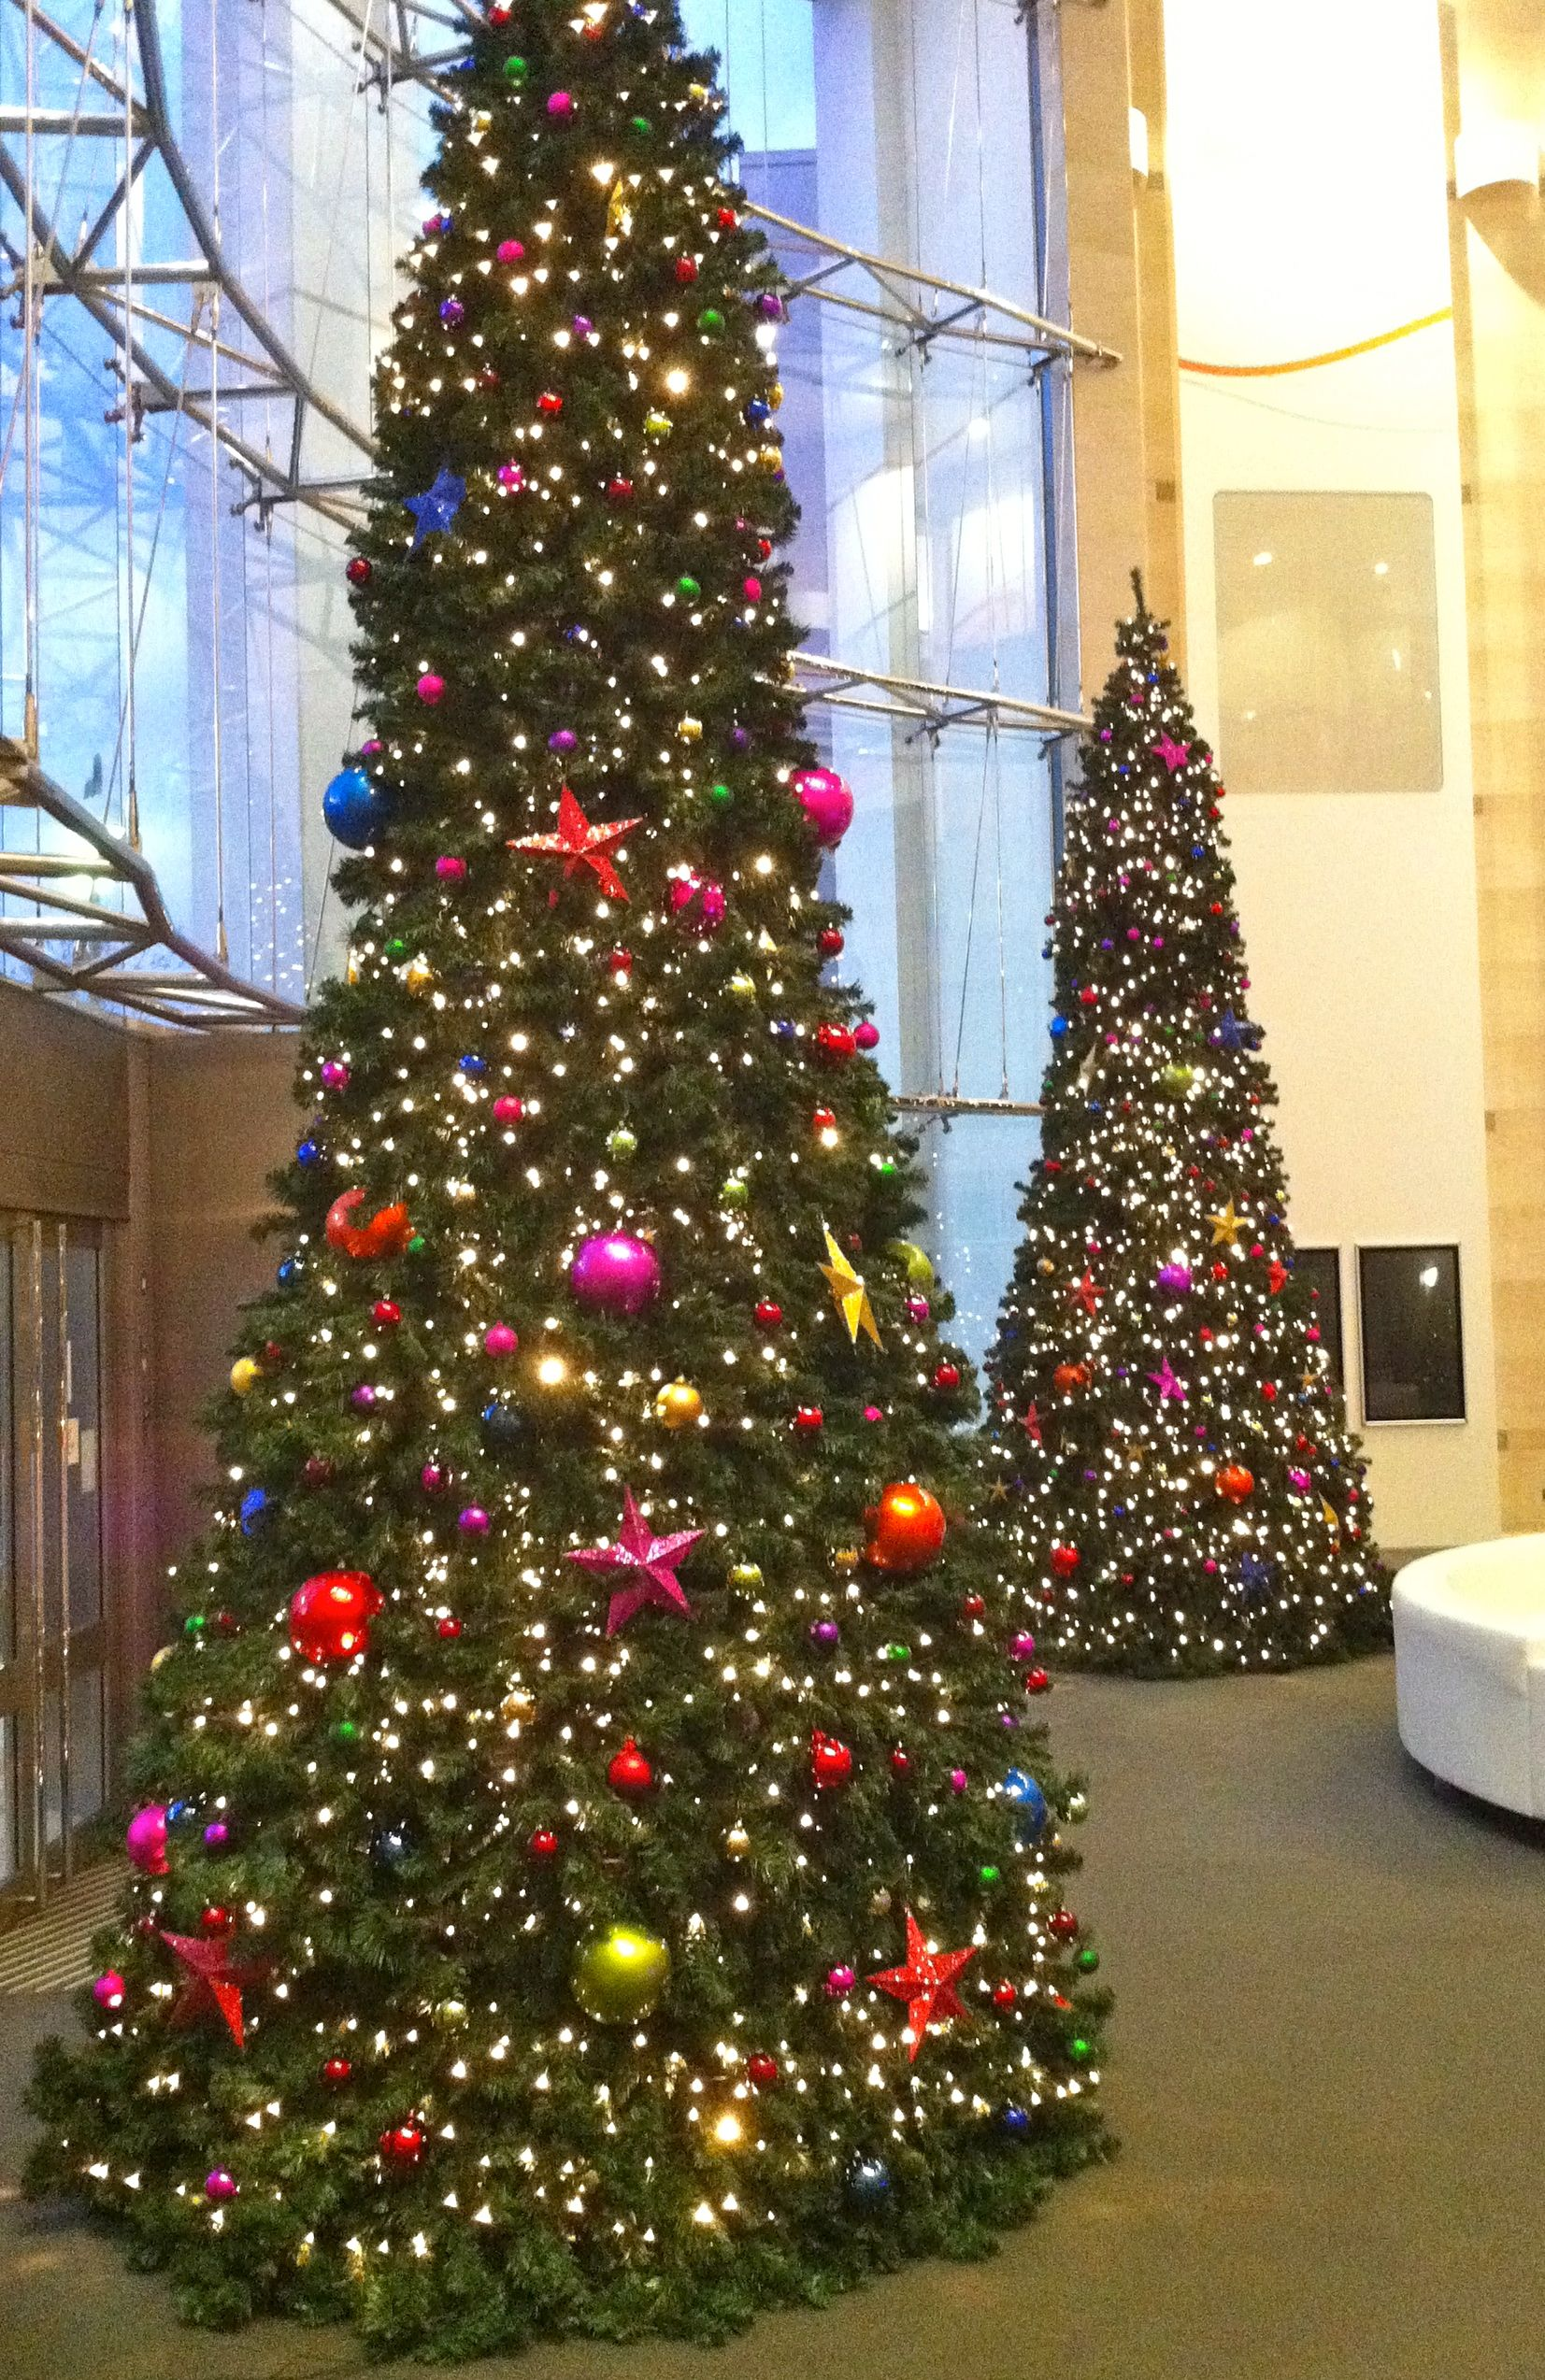 20 Ft Christmas Tree.Pair Of 20ft Decorated Artificial Christmas Trees In